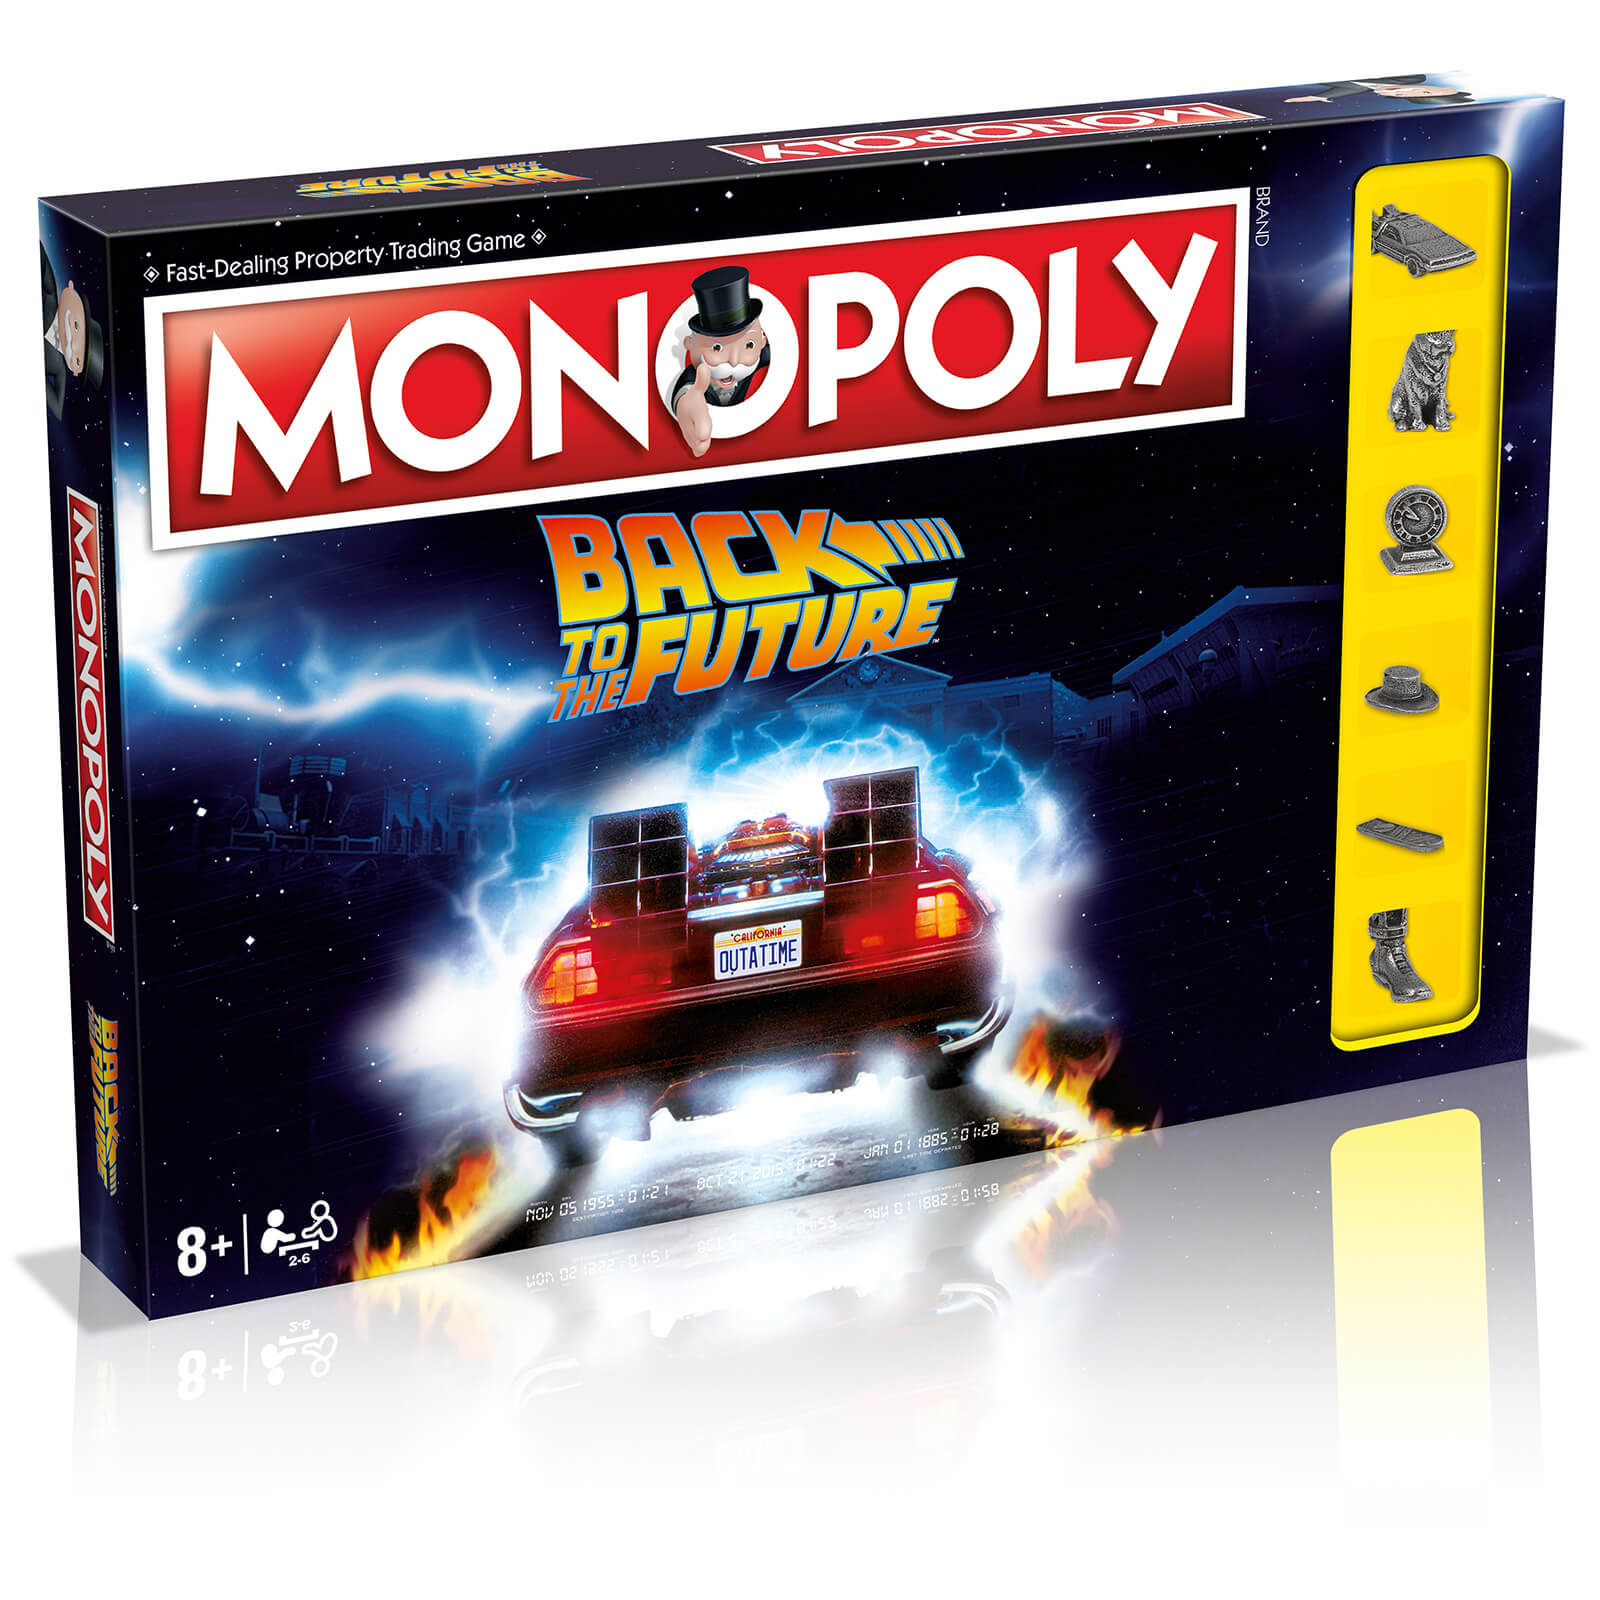 Image of Monopoly Board Games - Back to the Future Edition - Zavvi Online Exclusive (Limited Edition)